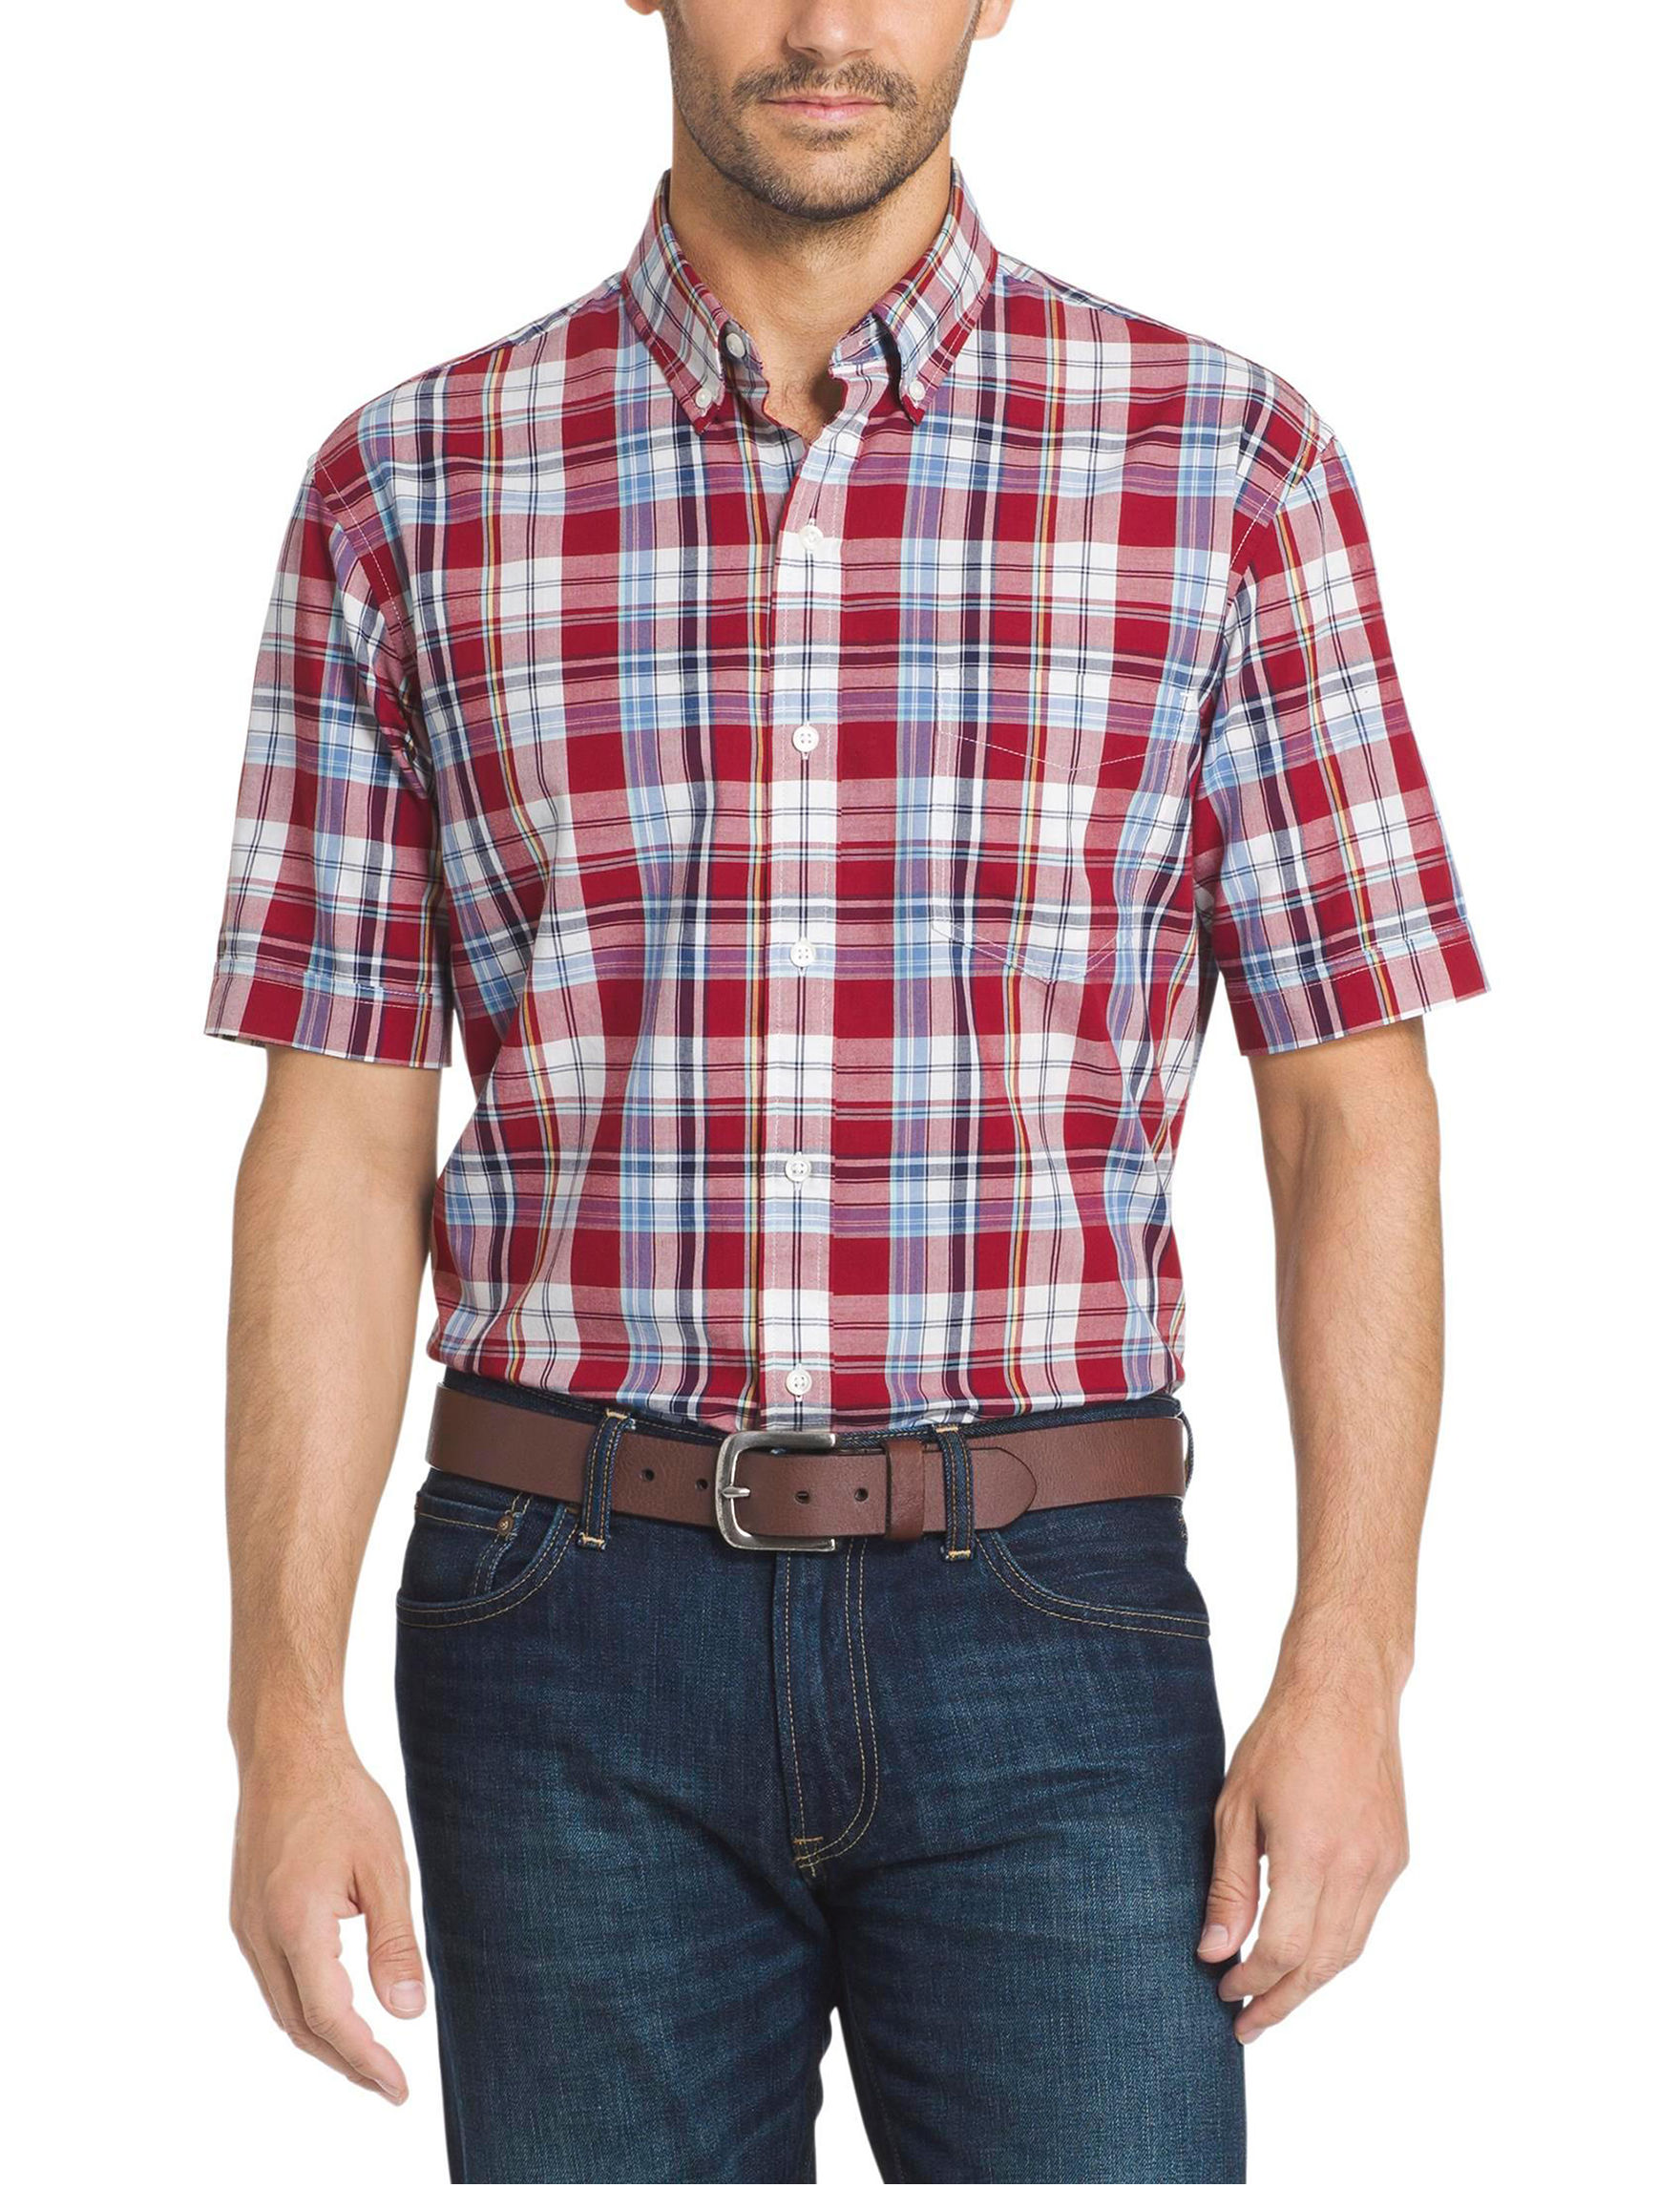 Arrow Sundried Tomato Heather Casual Button Down Shirts